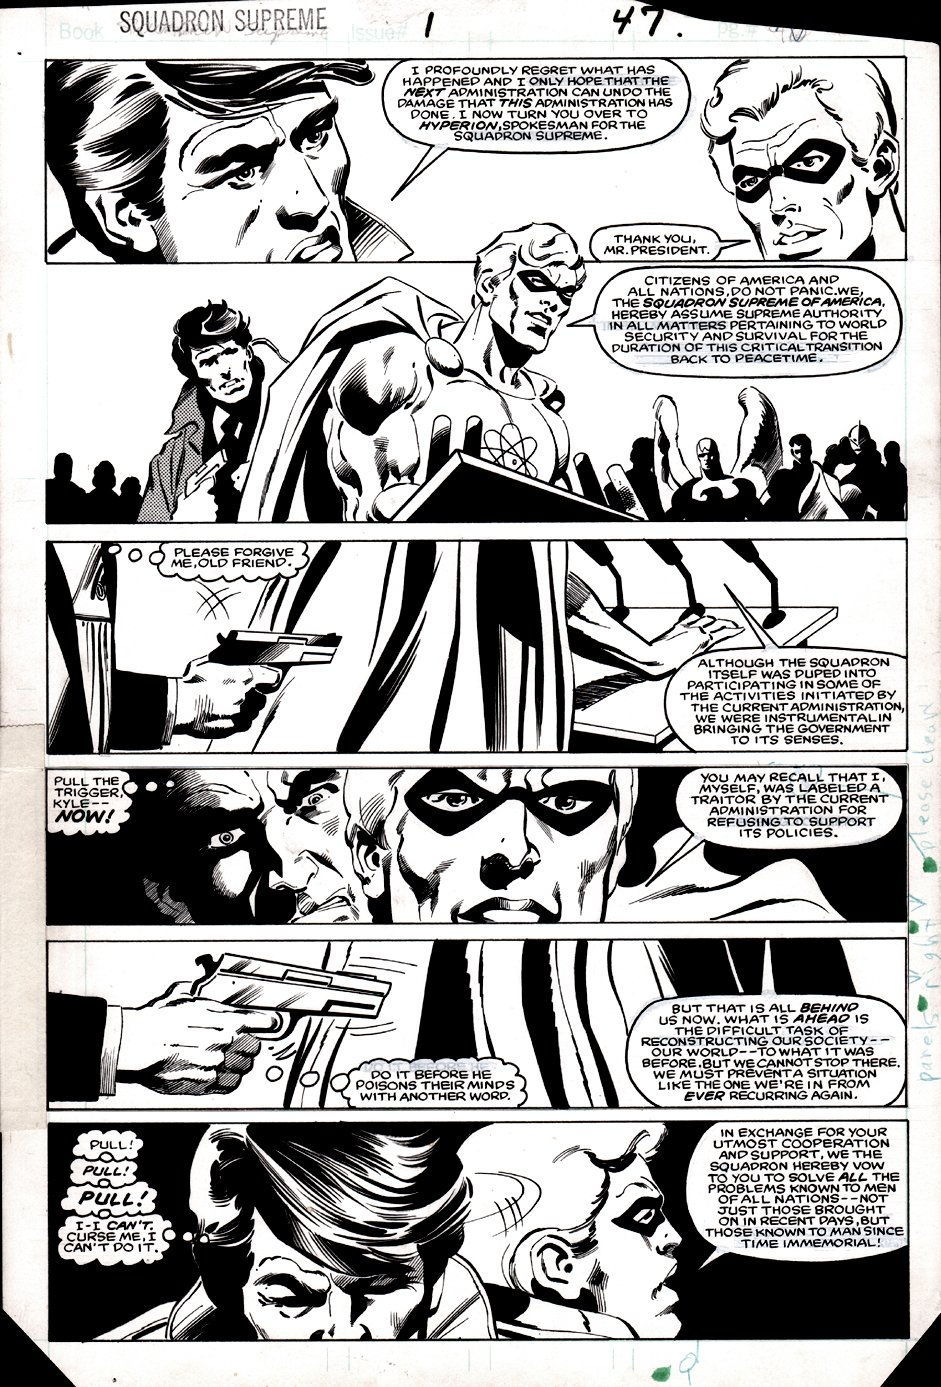 Squadron Supreme #1 p 47 (HISTORIC 1ST ISSUE PAGE WHERE HYPERION ANNOUNCES TO AMERICA THEY ARE TAKING OVER THE WORLD!) 1985